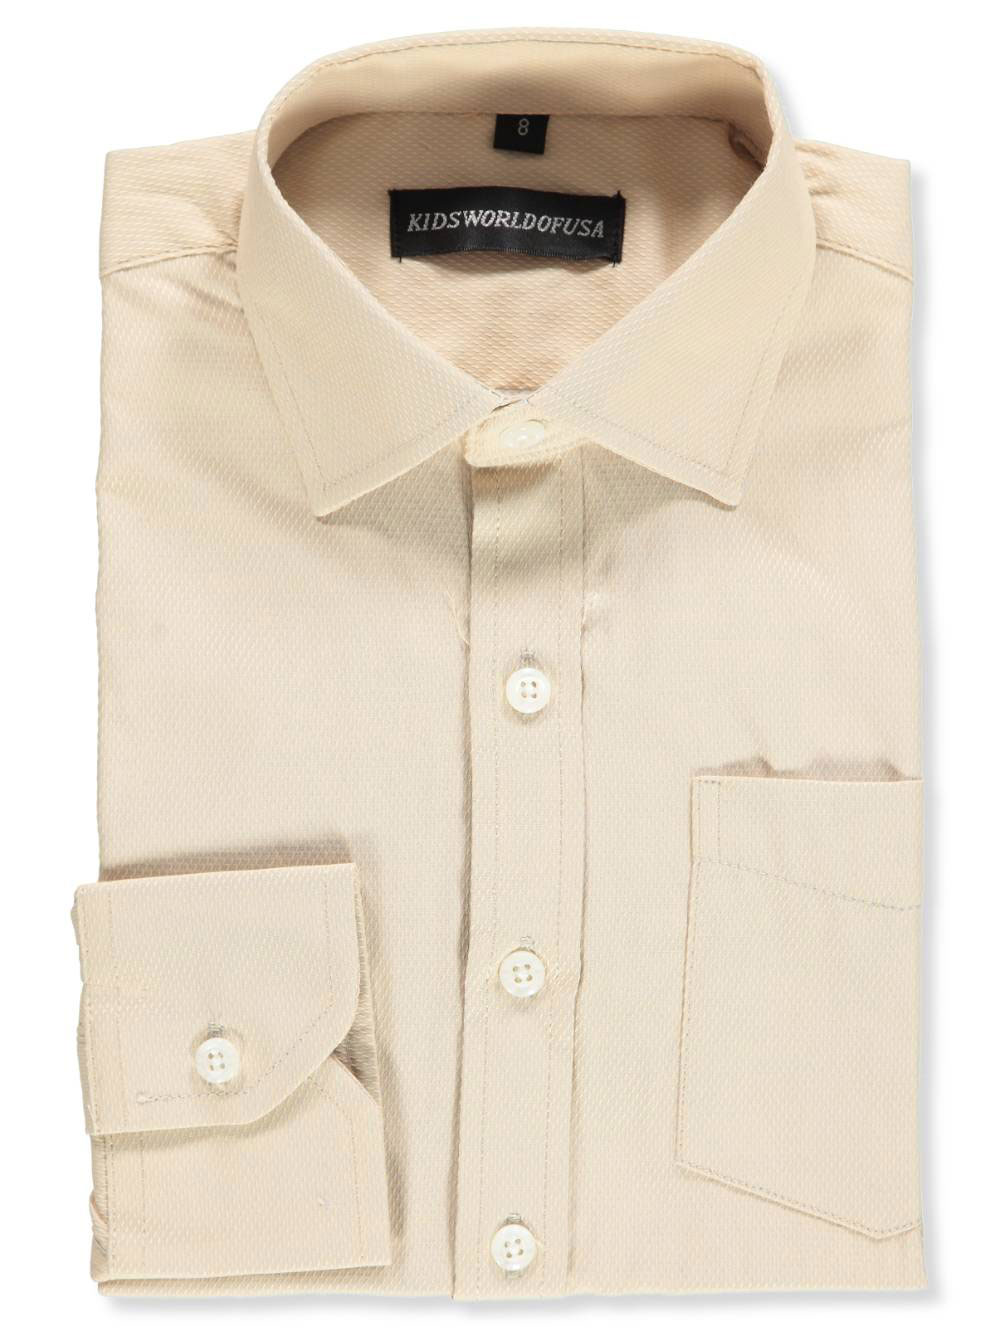 87118cec3 Kids World Boys  Dress Shirt